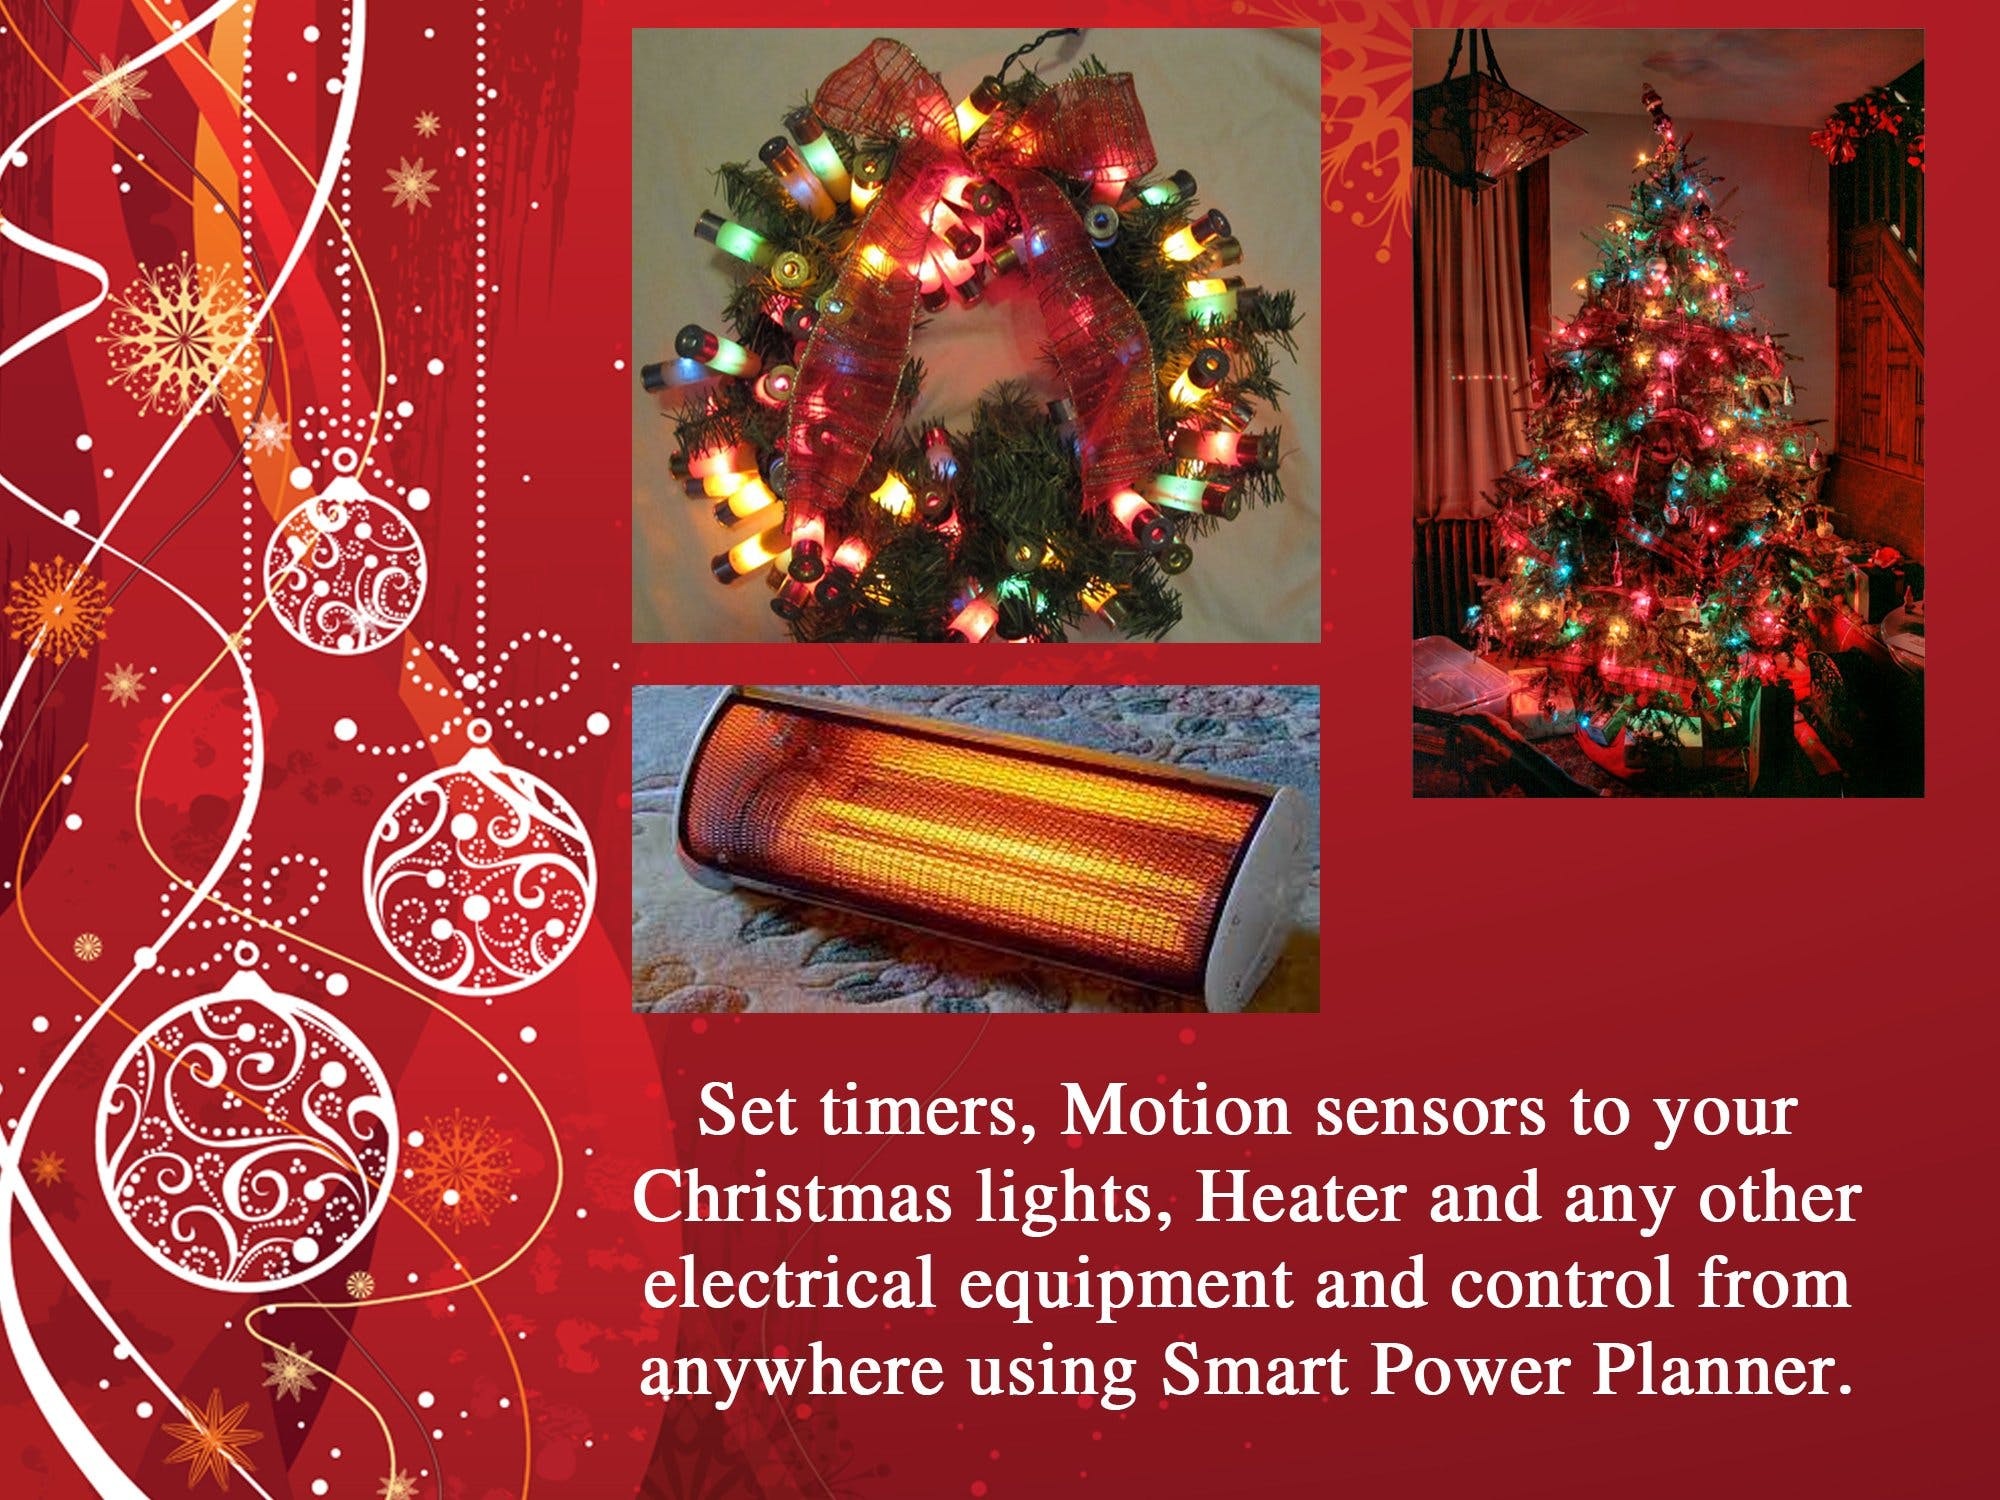 Plan your Holiday with Smart Power Planner